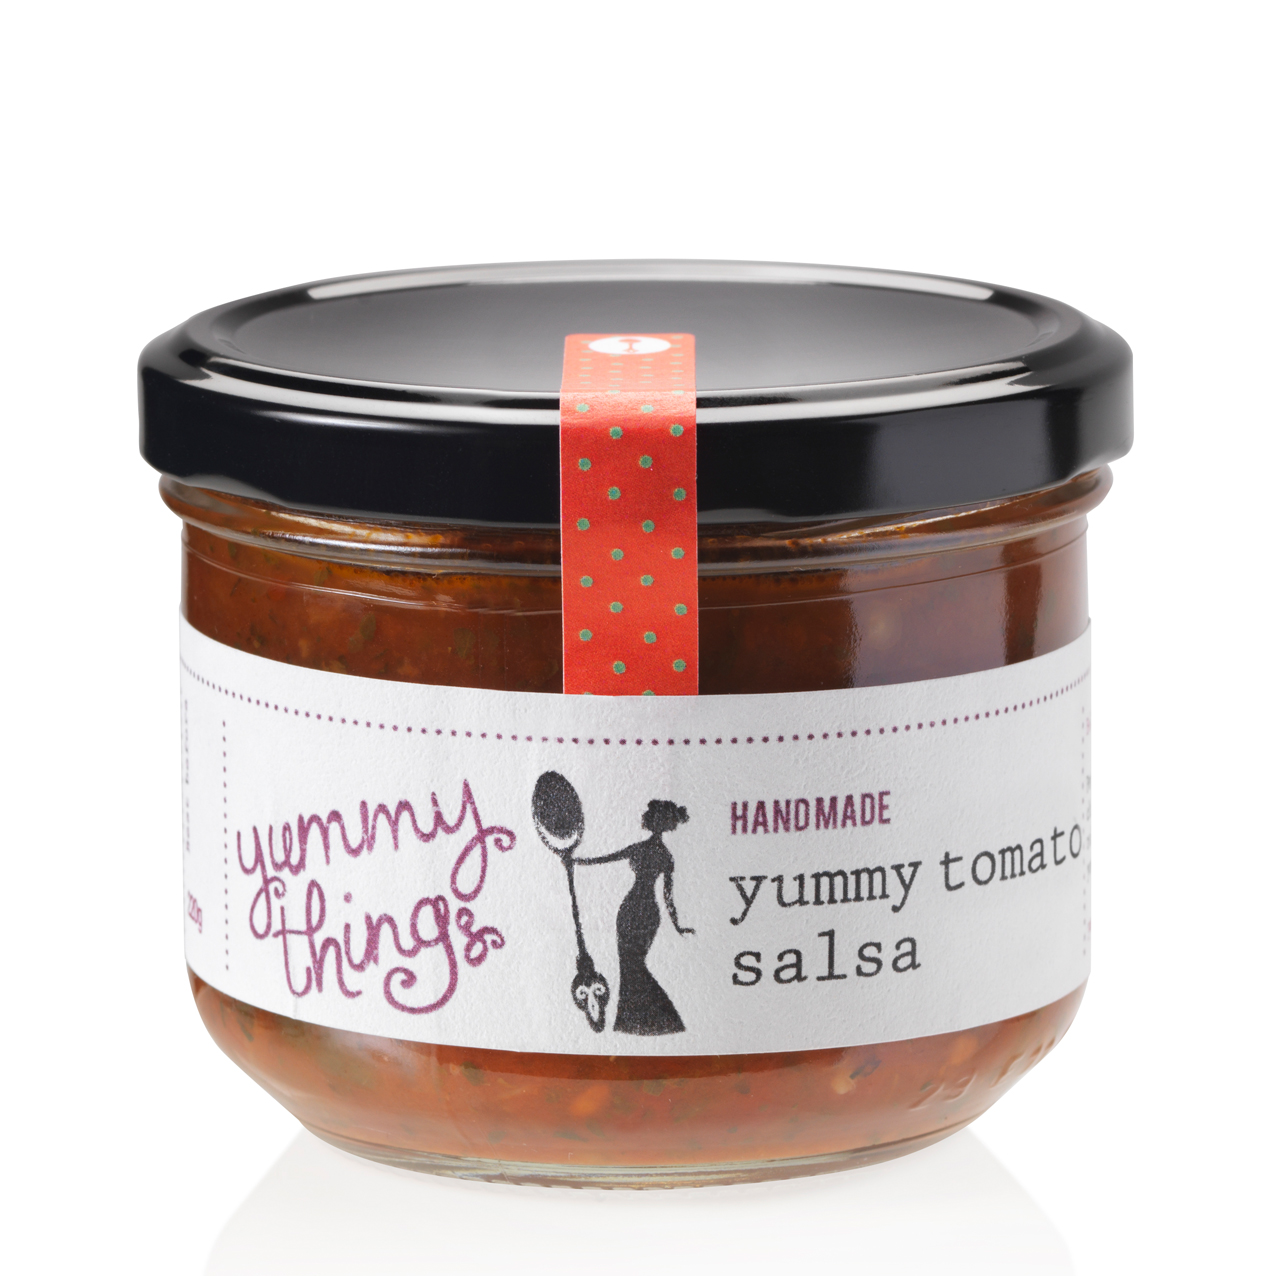 Yummy Things' delicious, seasonal handmade yummy tomato salsa - Handmade in Gosforth, Newcastle upon Tyne - The perfect foodie gift!